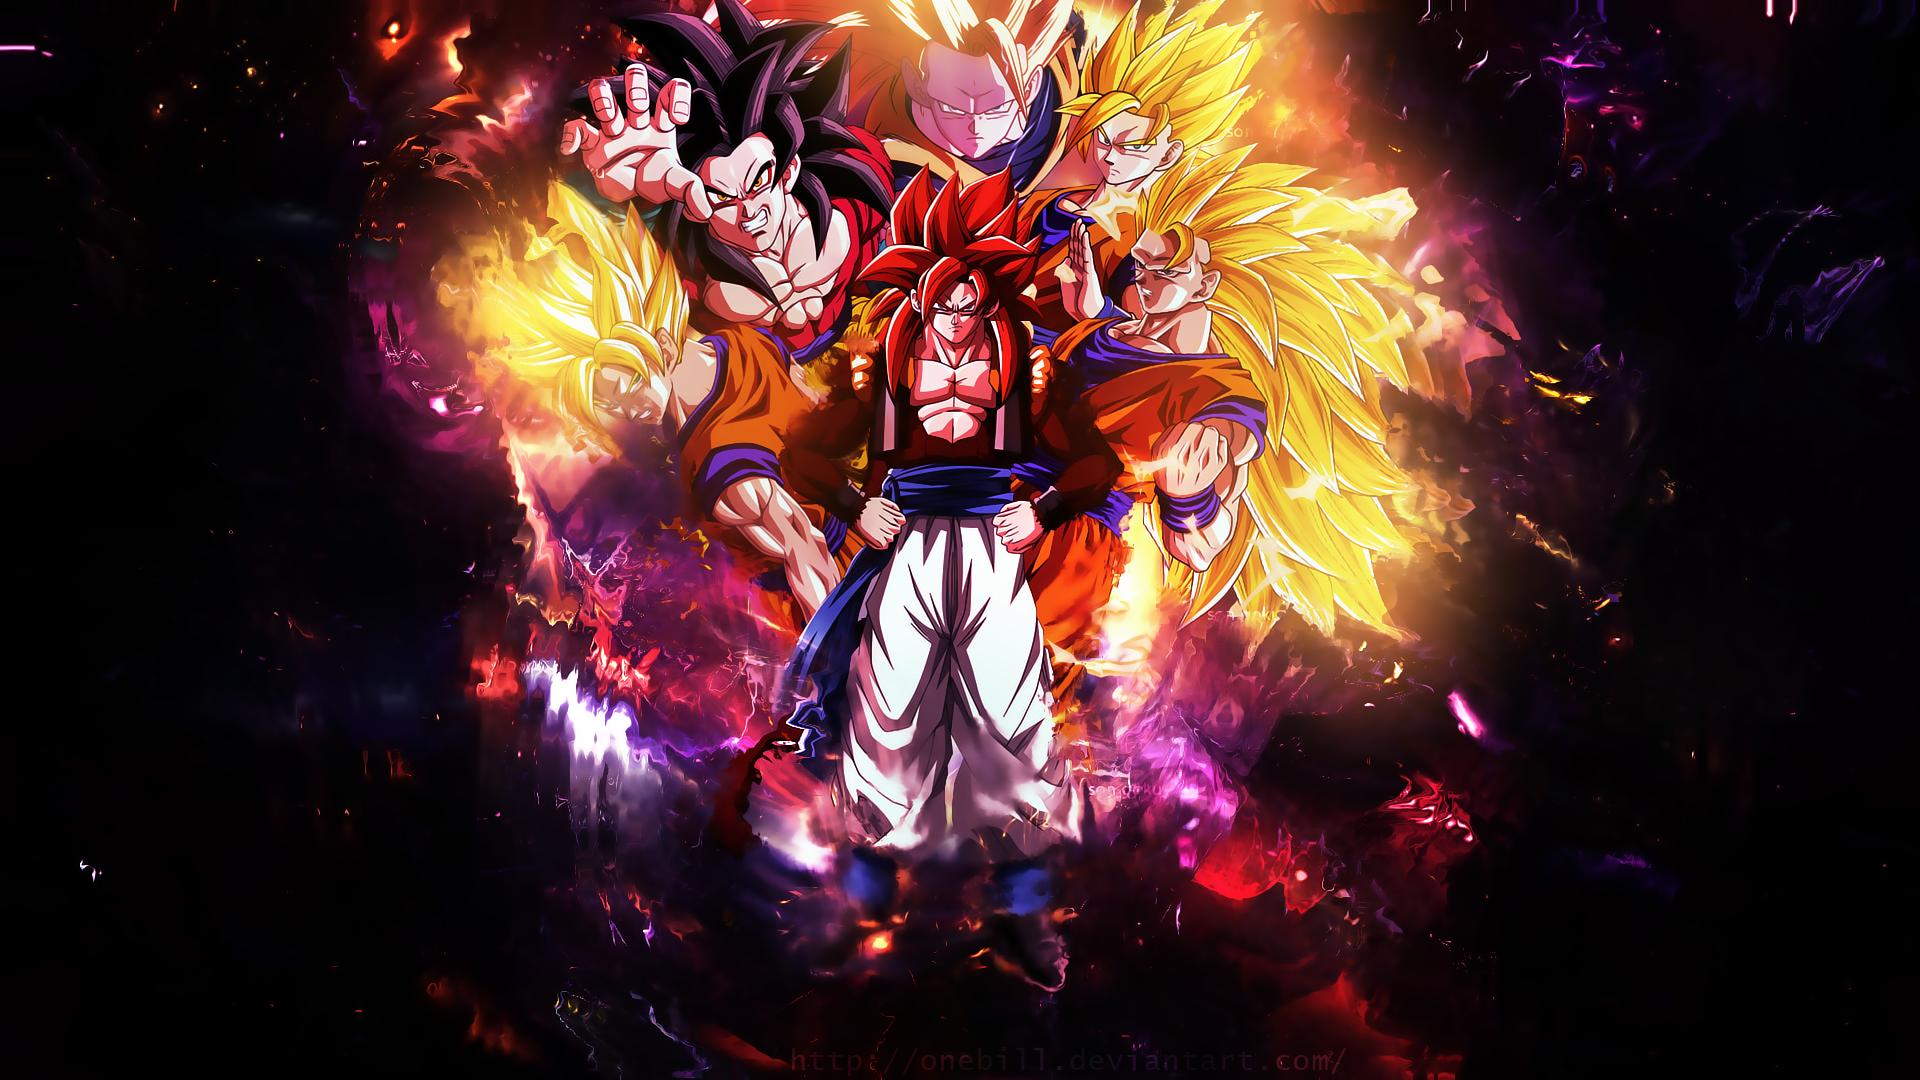 Goku Wallpapers Wallpaper Cave Hd Wallpaper Background Image